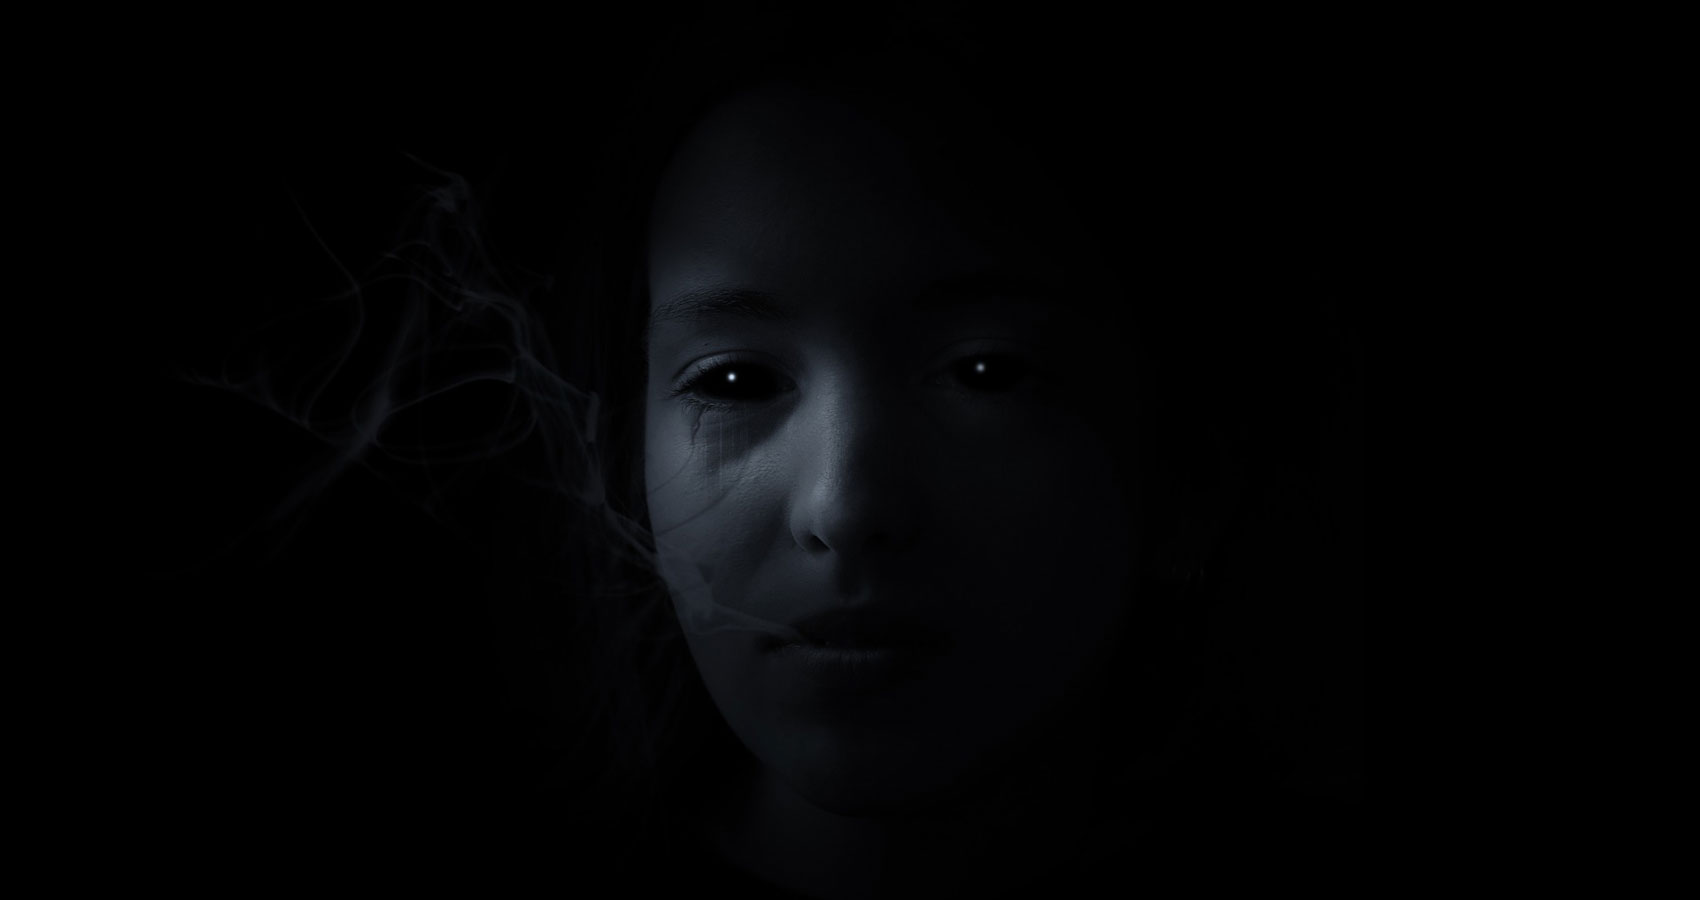 The Girl with Obsidian Eyes, story by Jason Herrington at Spillwords.com